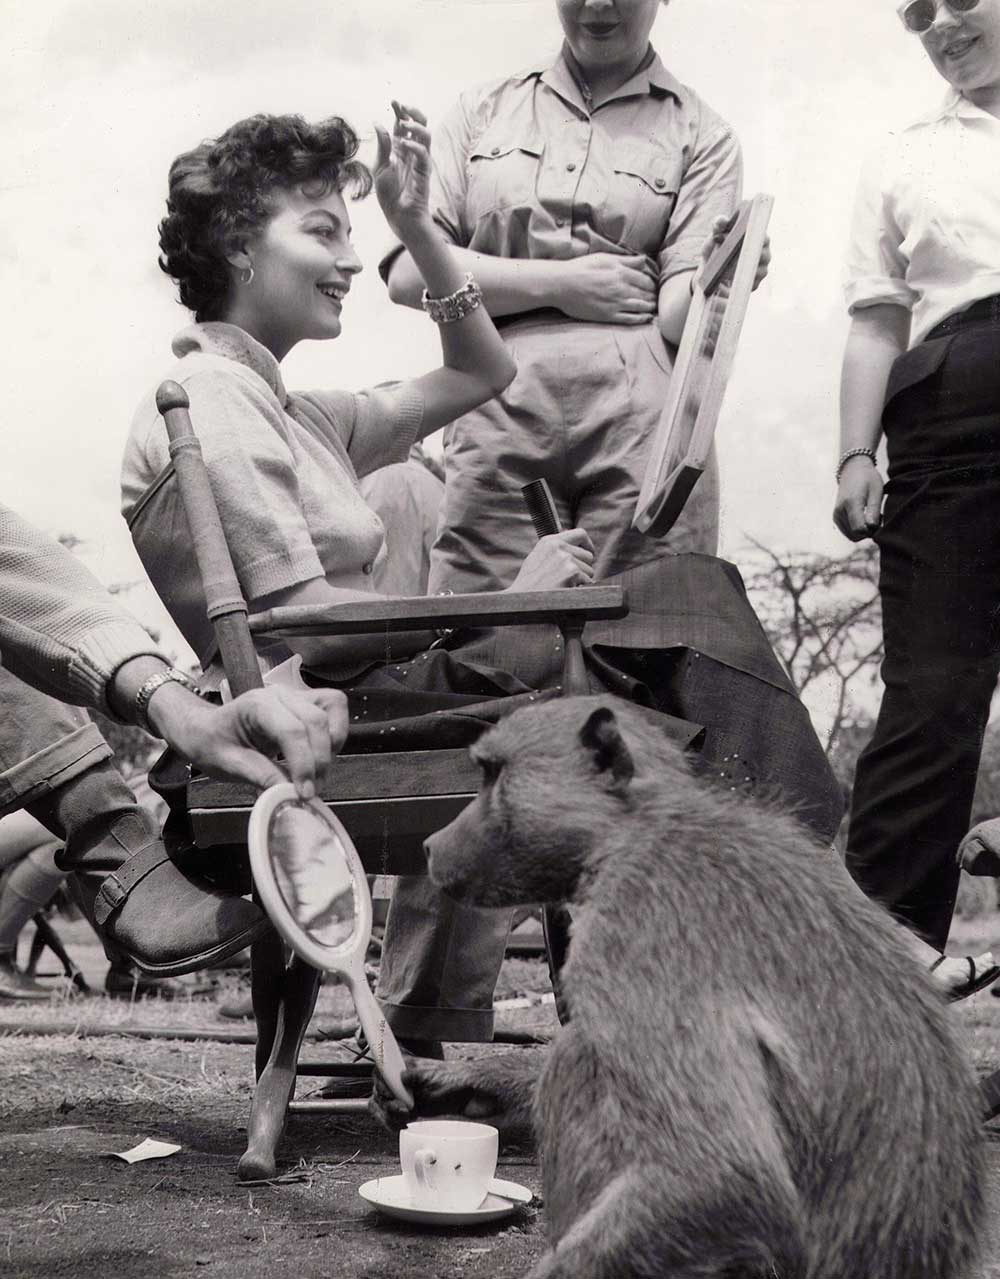 Ava-Gardner-and-a-baboon-fixing-themselves-on-the-set-of-Mogambo.jpg